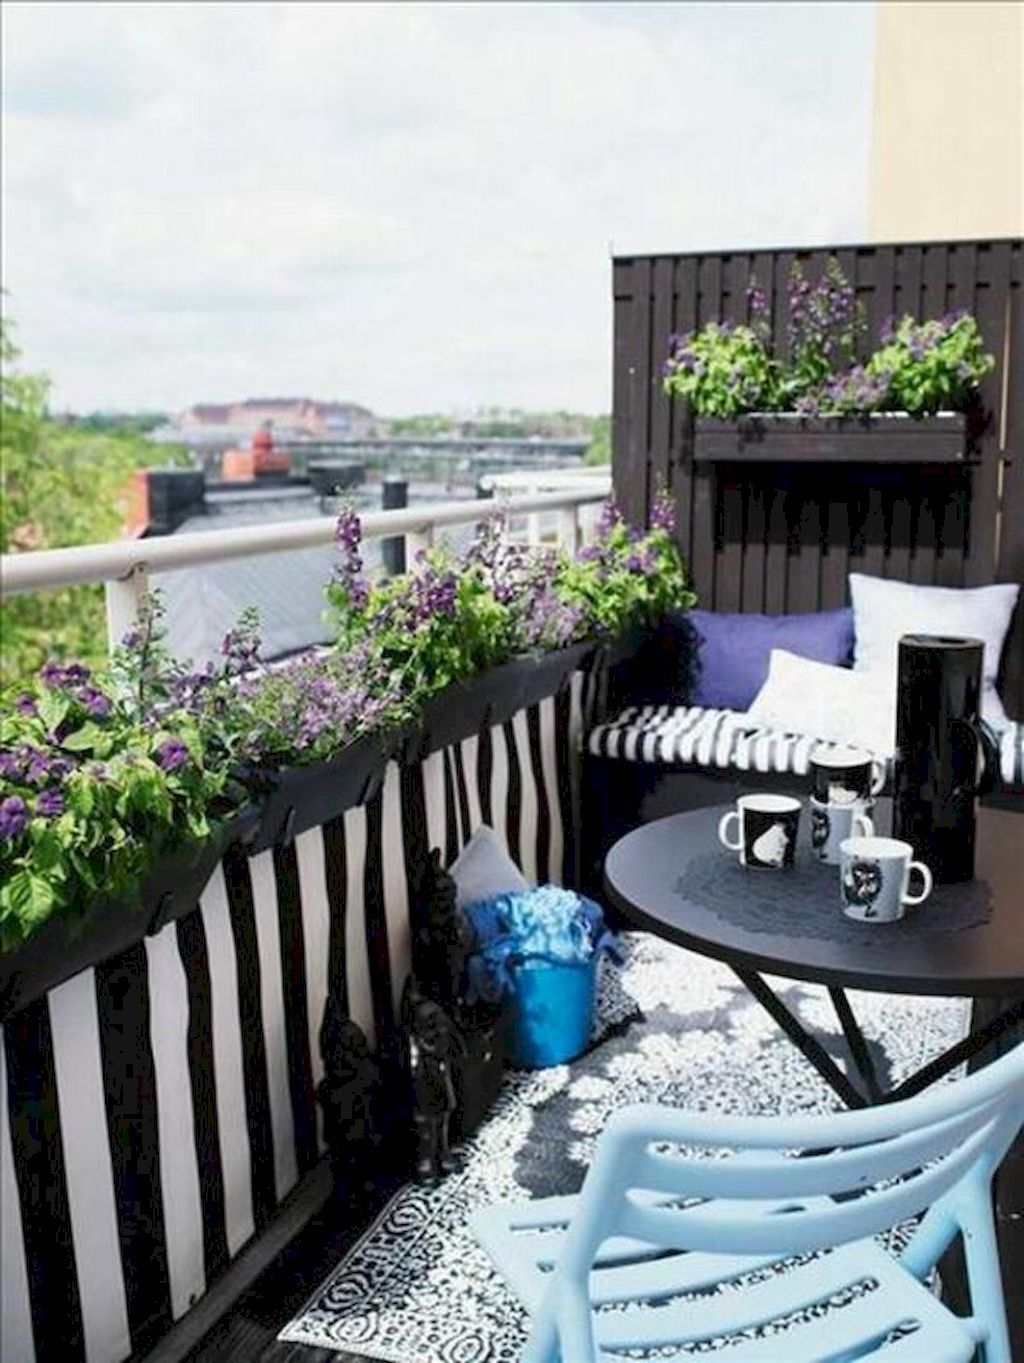 72 Smart Balcony Designs Ideas with Scandinavian | Balcony design ...